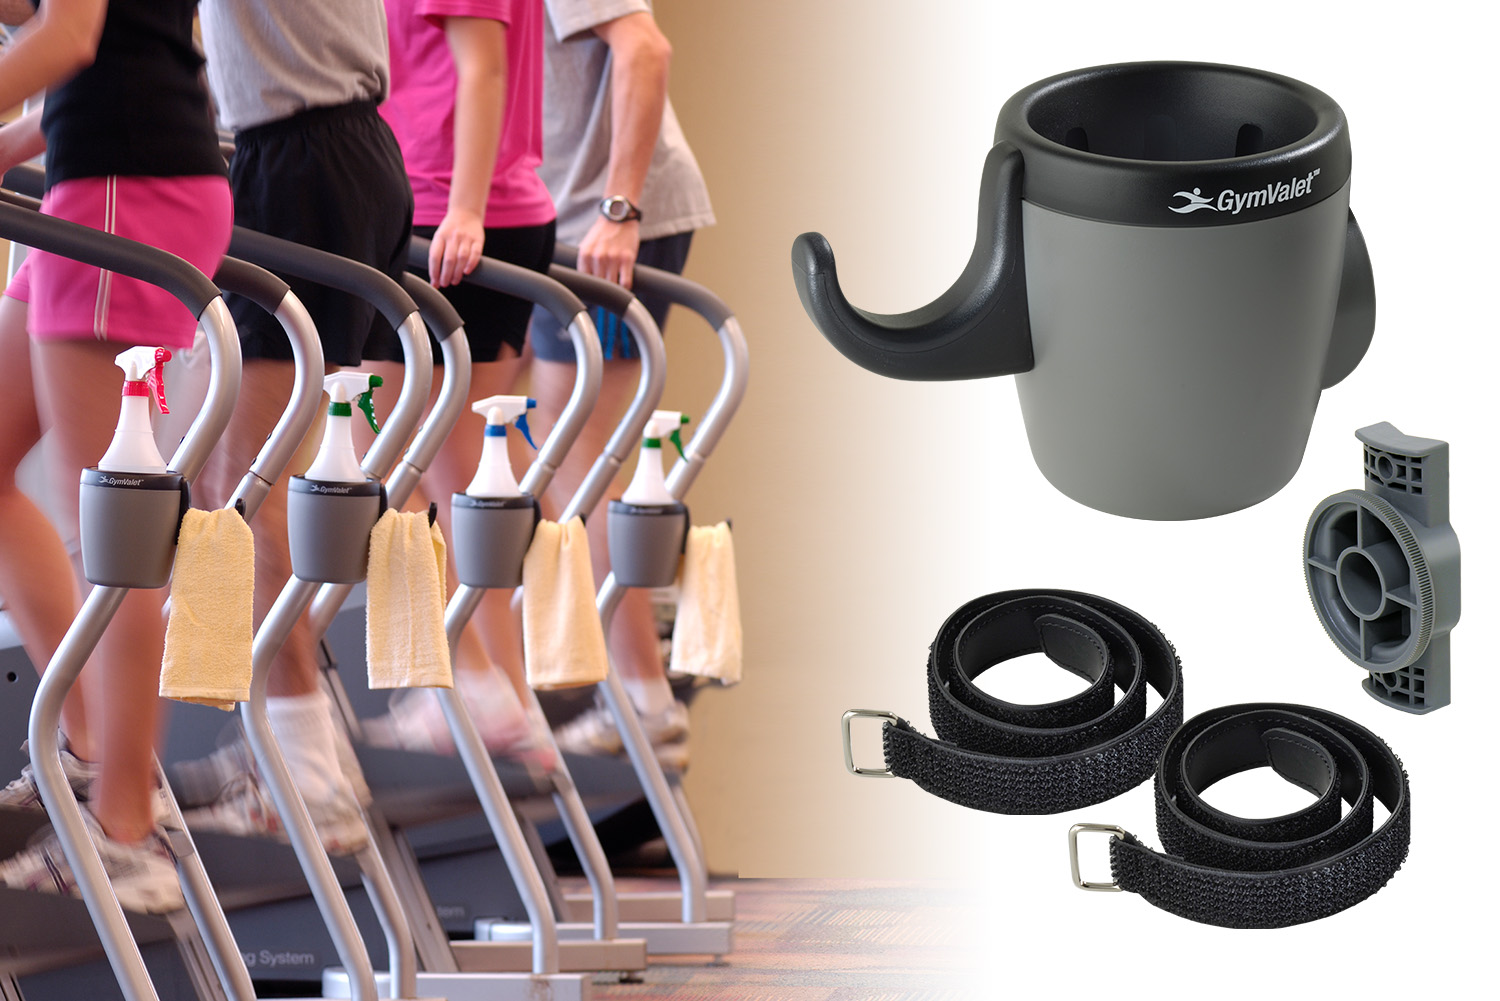 Clean fitness centers easily with the GymValet bottle and towel holder.